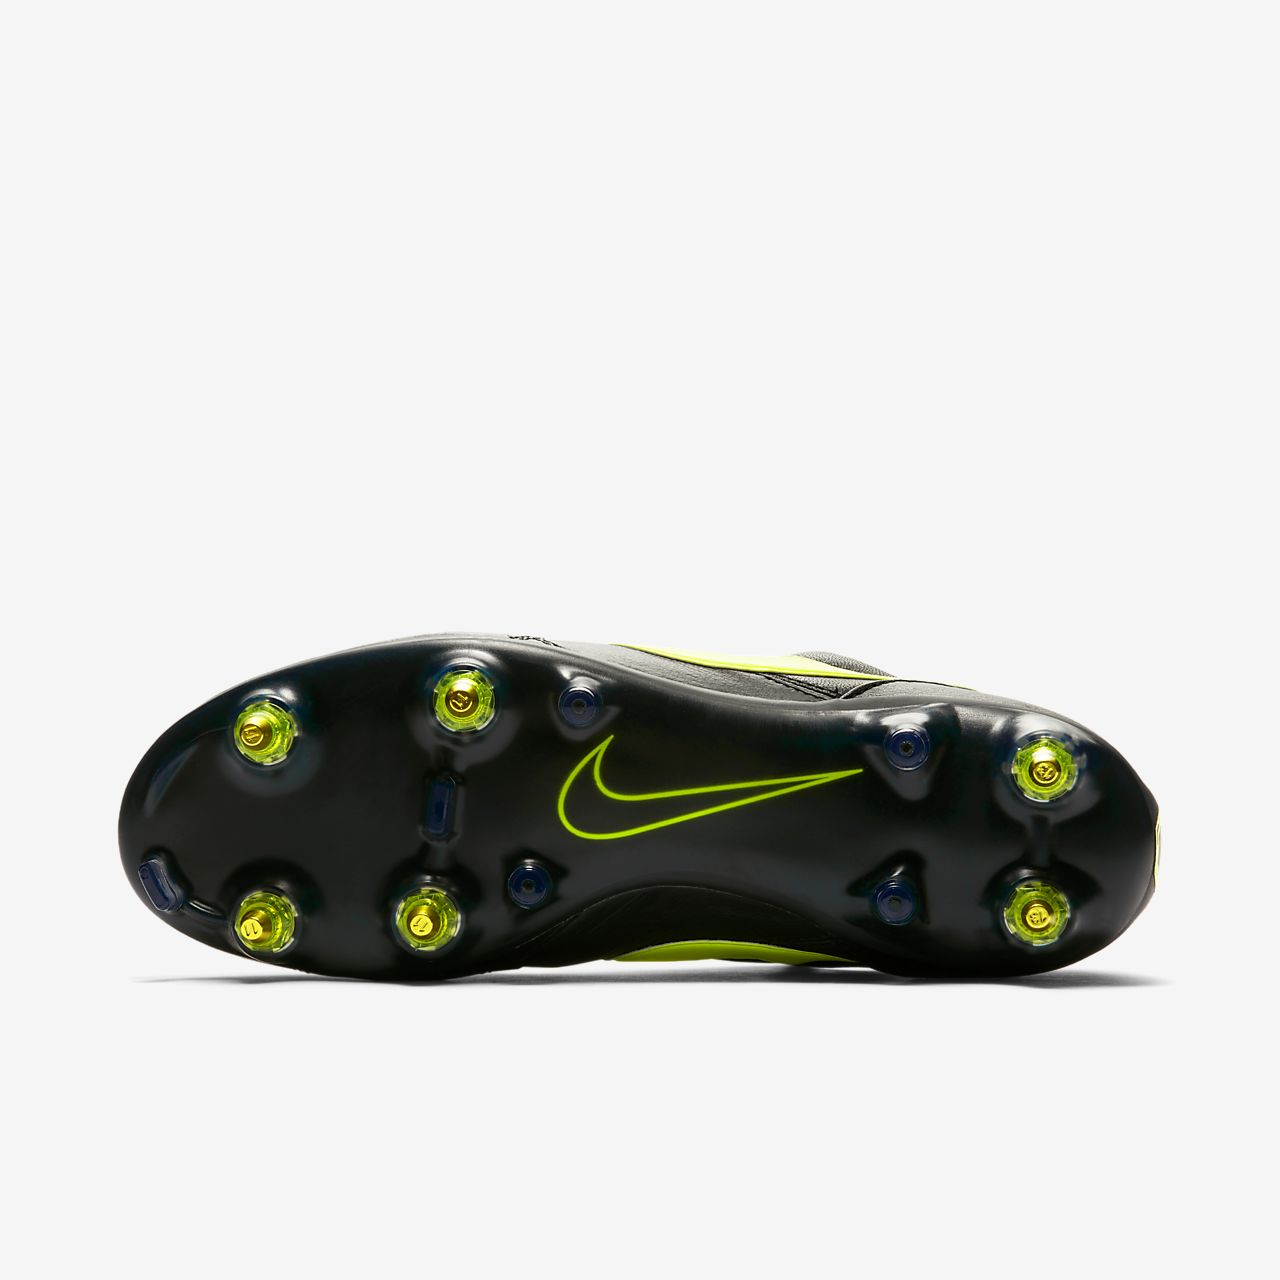 innovative design 2b8e5 04575 ... Chaussure de football à crampons pour terrain gras Nike Premier II Anti-Clog  Traction SG